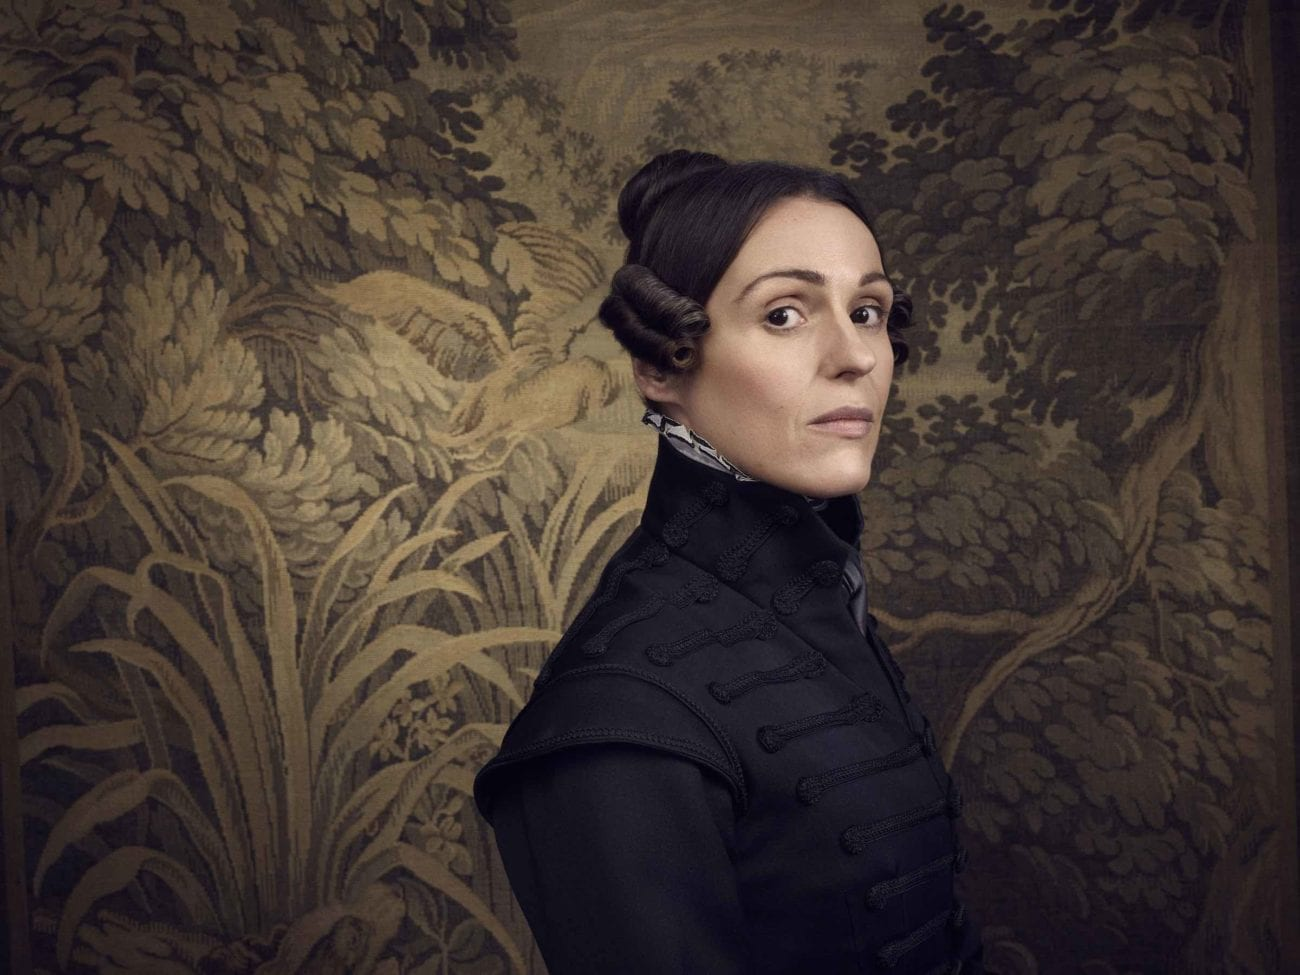 BBC/HBO's 'Gentleman Jack' is the progressive tale of Anne Lister, the perfect antidote to 'Downton Abbey' for these post-woke times.